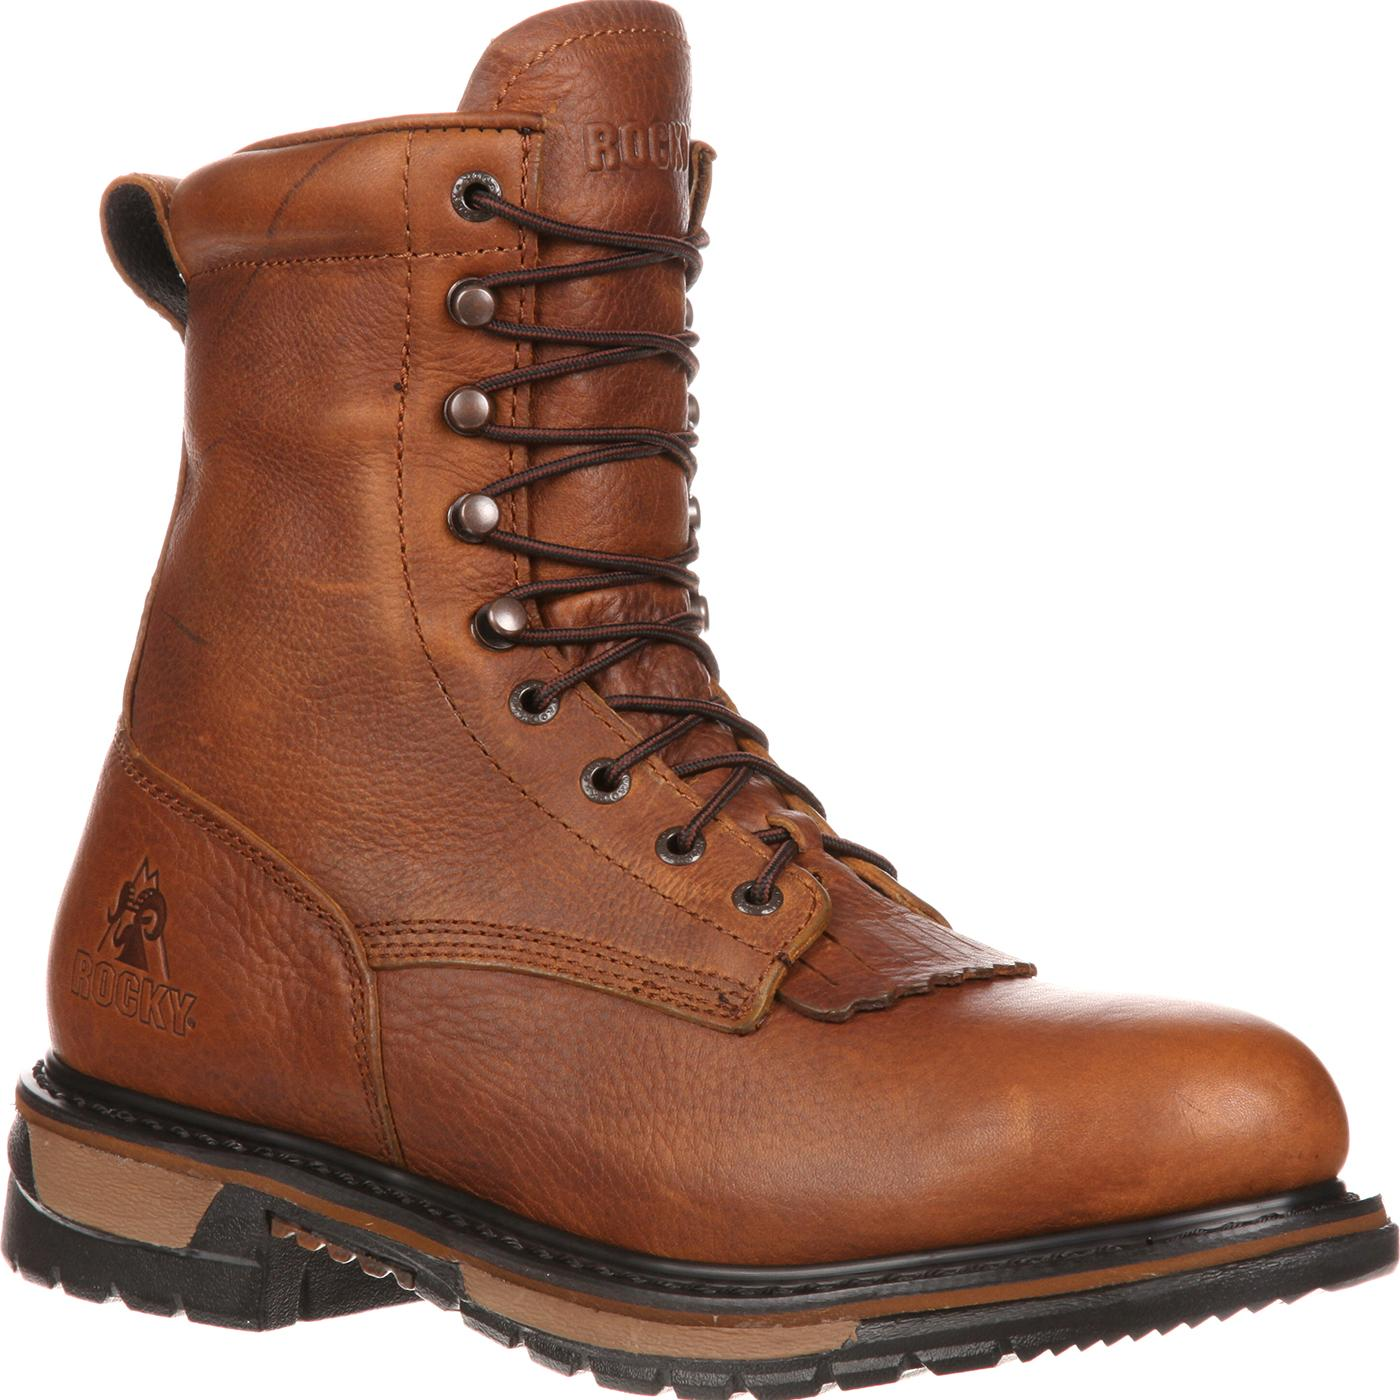 Lacer Waterproof Western Boot Rocky Original Ride Fq0002723